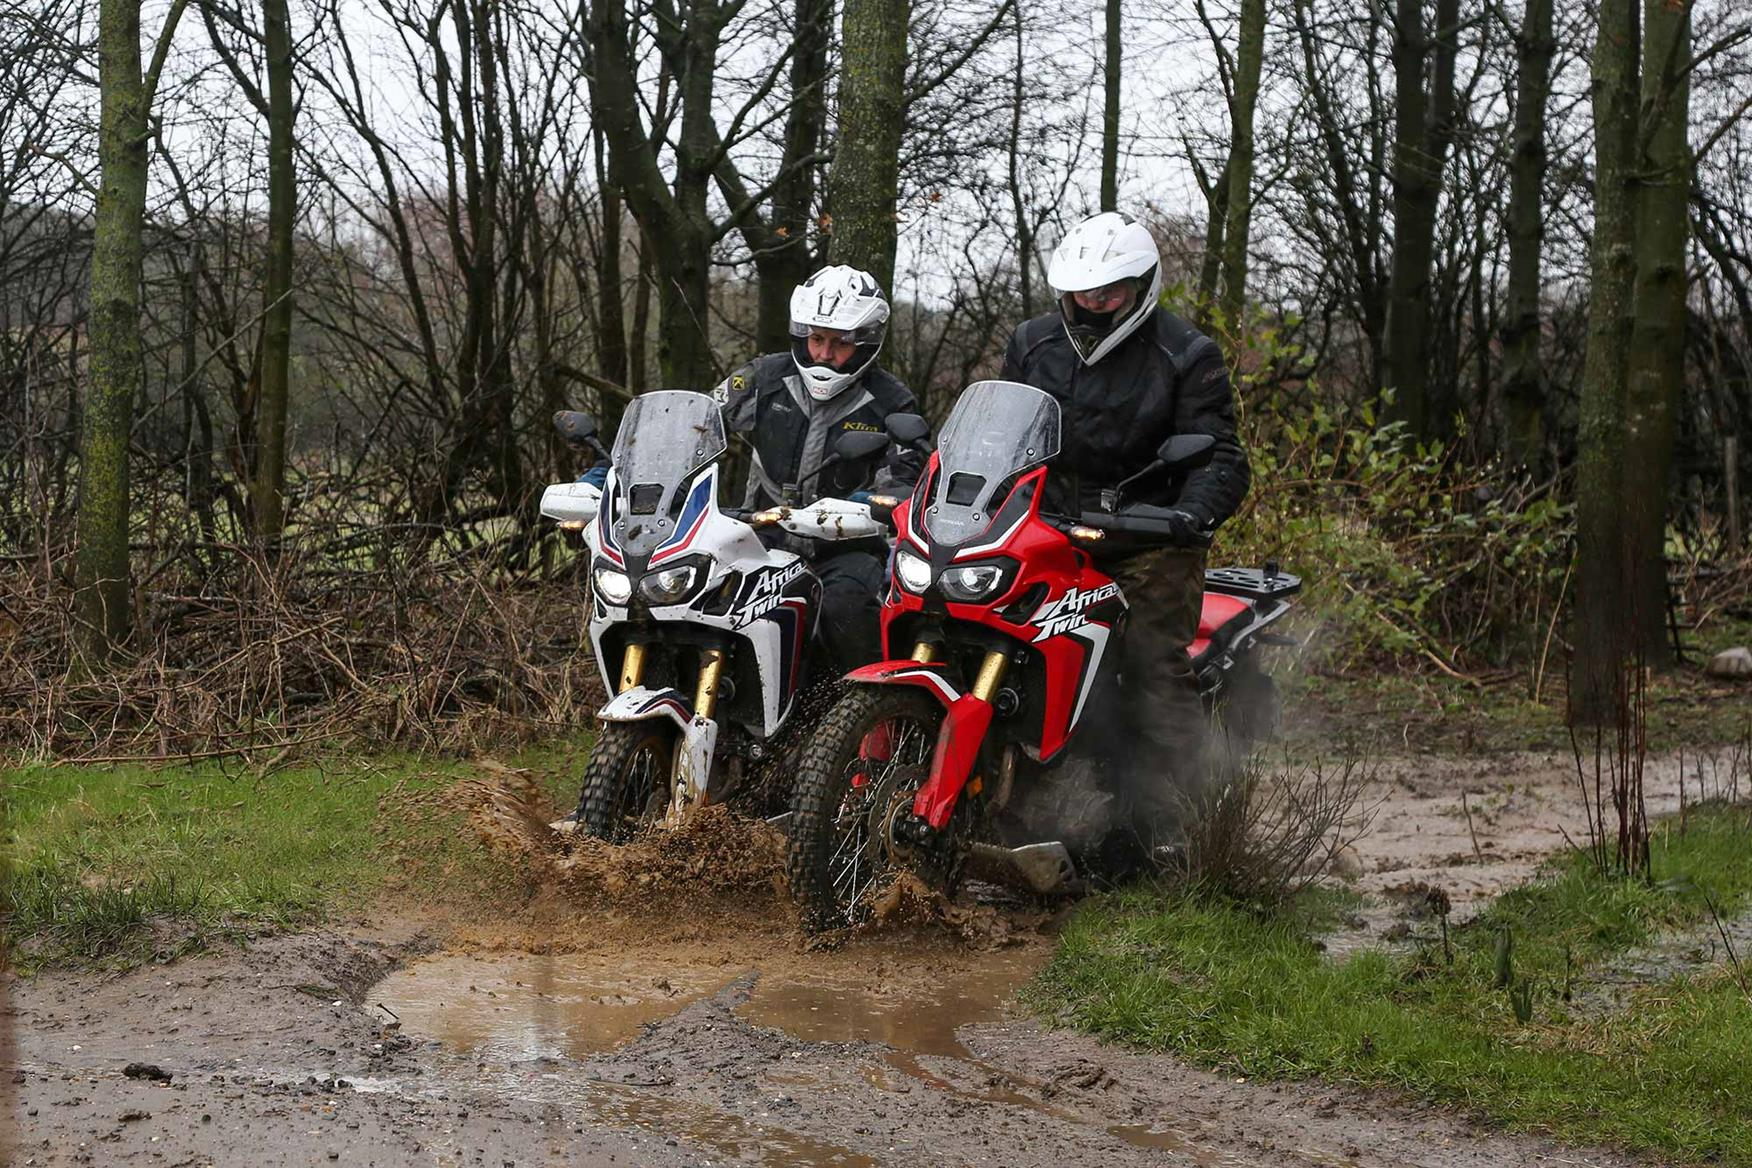 The 2016 manual Africa Twin battles the DCT version